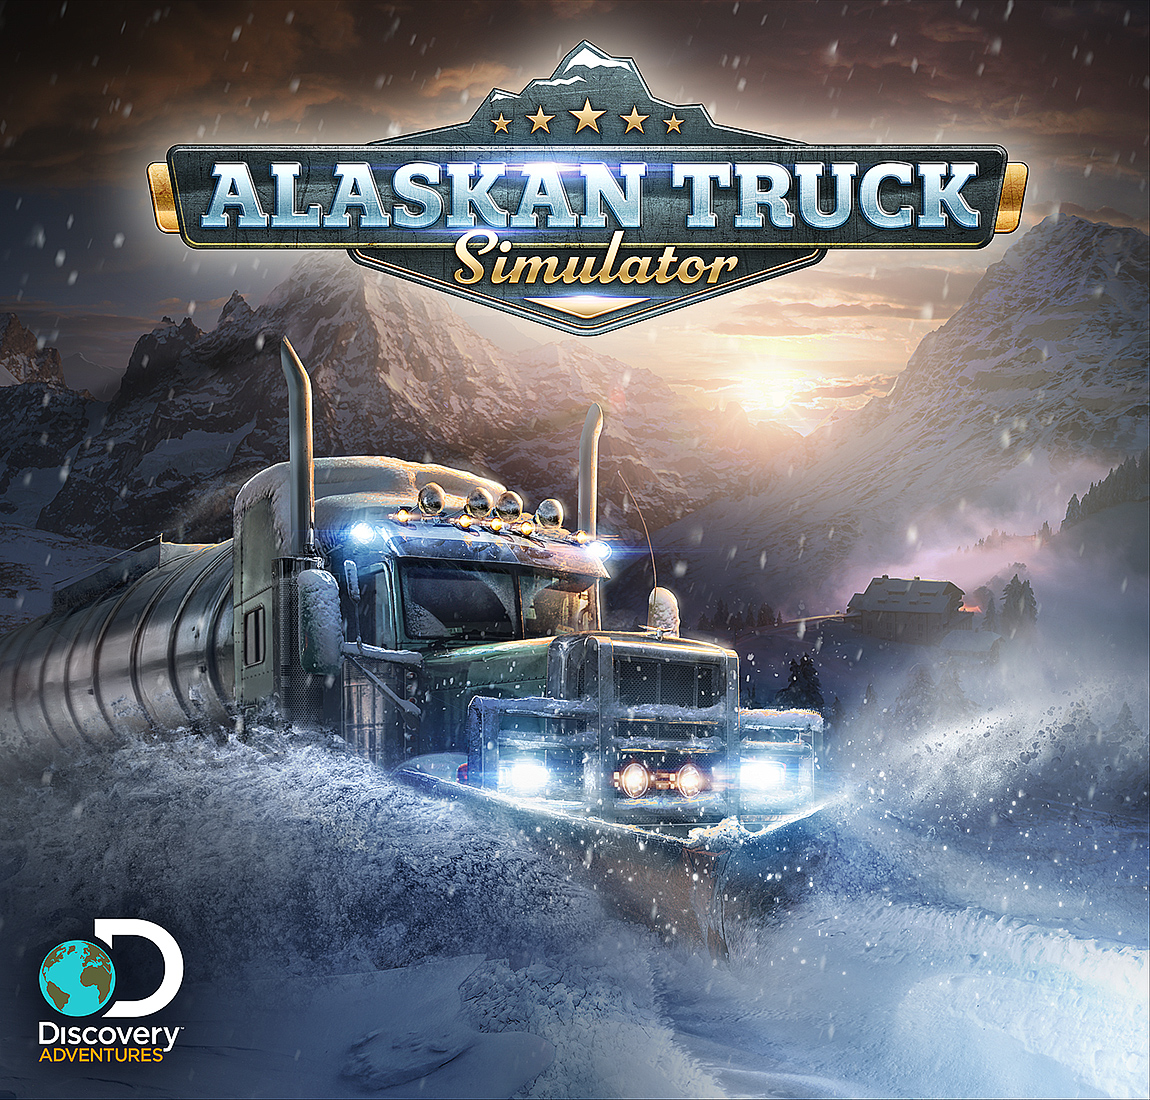 ALASKAN TRUCK SIMULATOR - Get behind the wheels of huge machines and into the boots of the Alaskan truckers. Challenge, and be challenged, by one of the most harsh and dangerous environments. See if you can survive long enough to fully experience the raw beauty of Alaska.